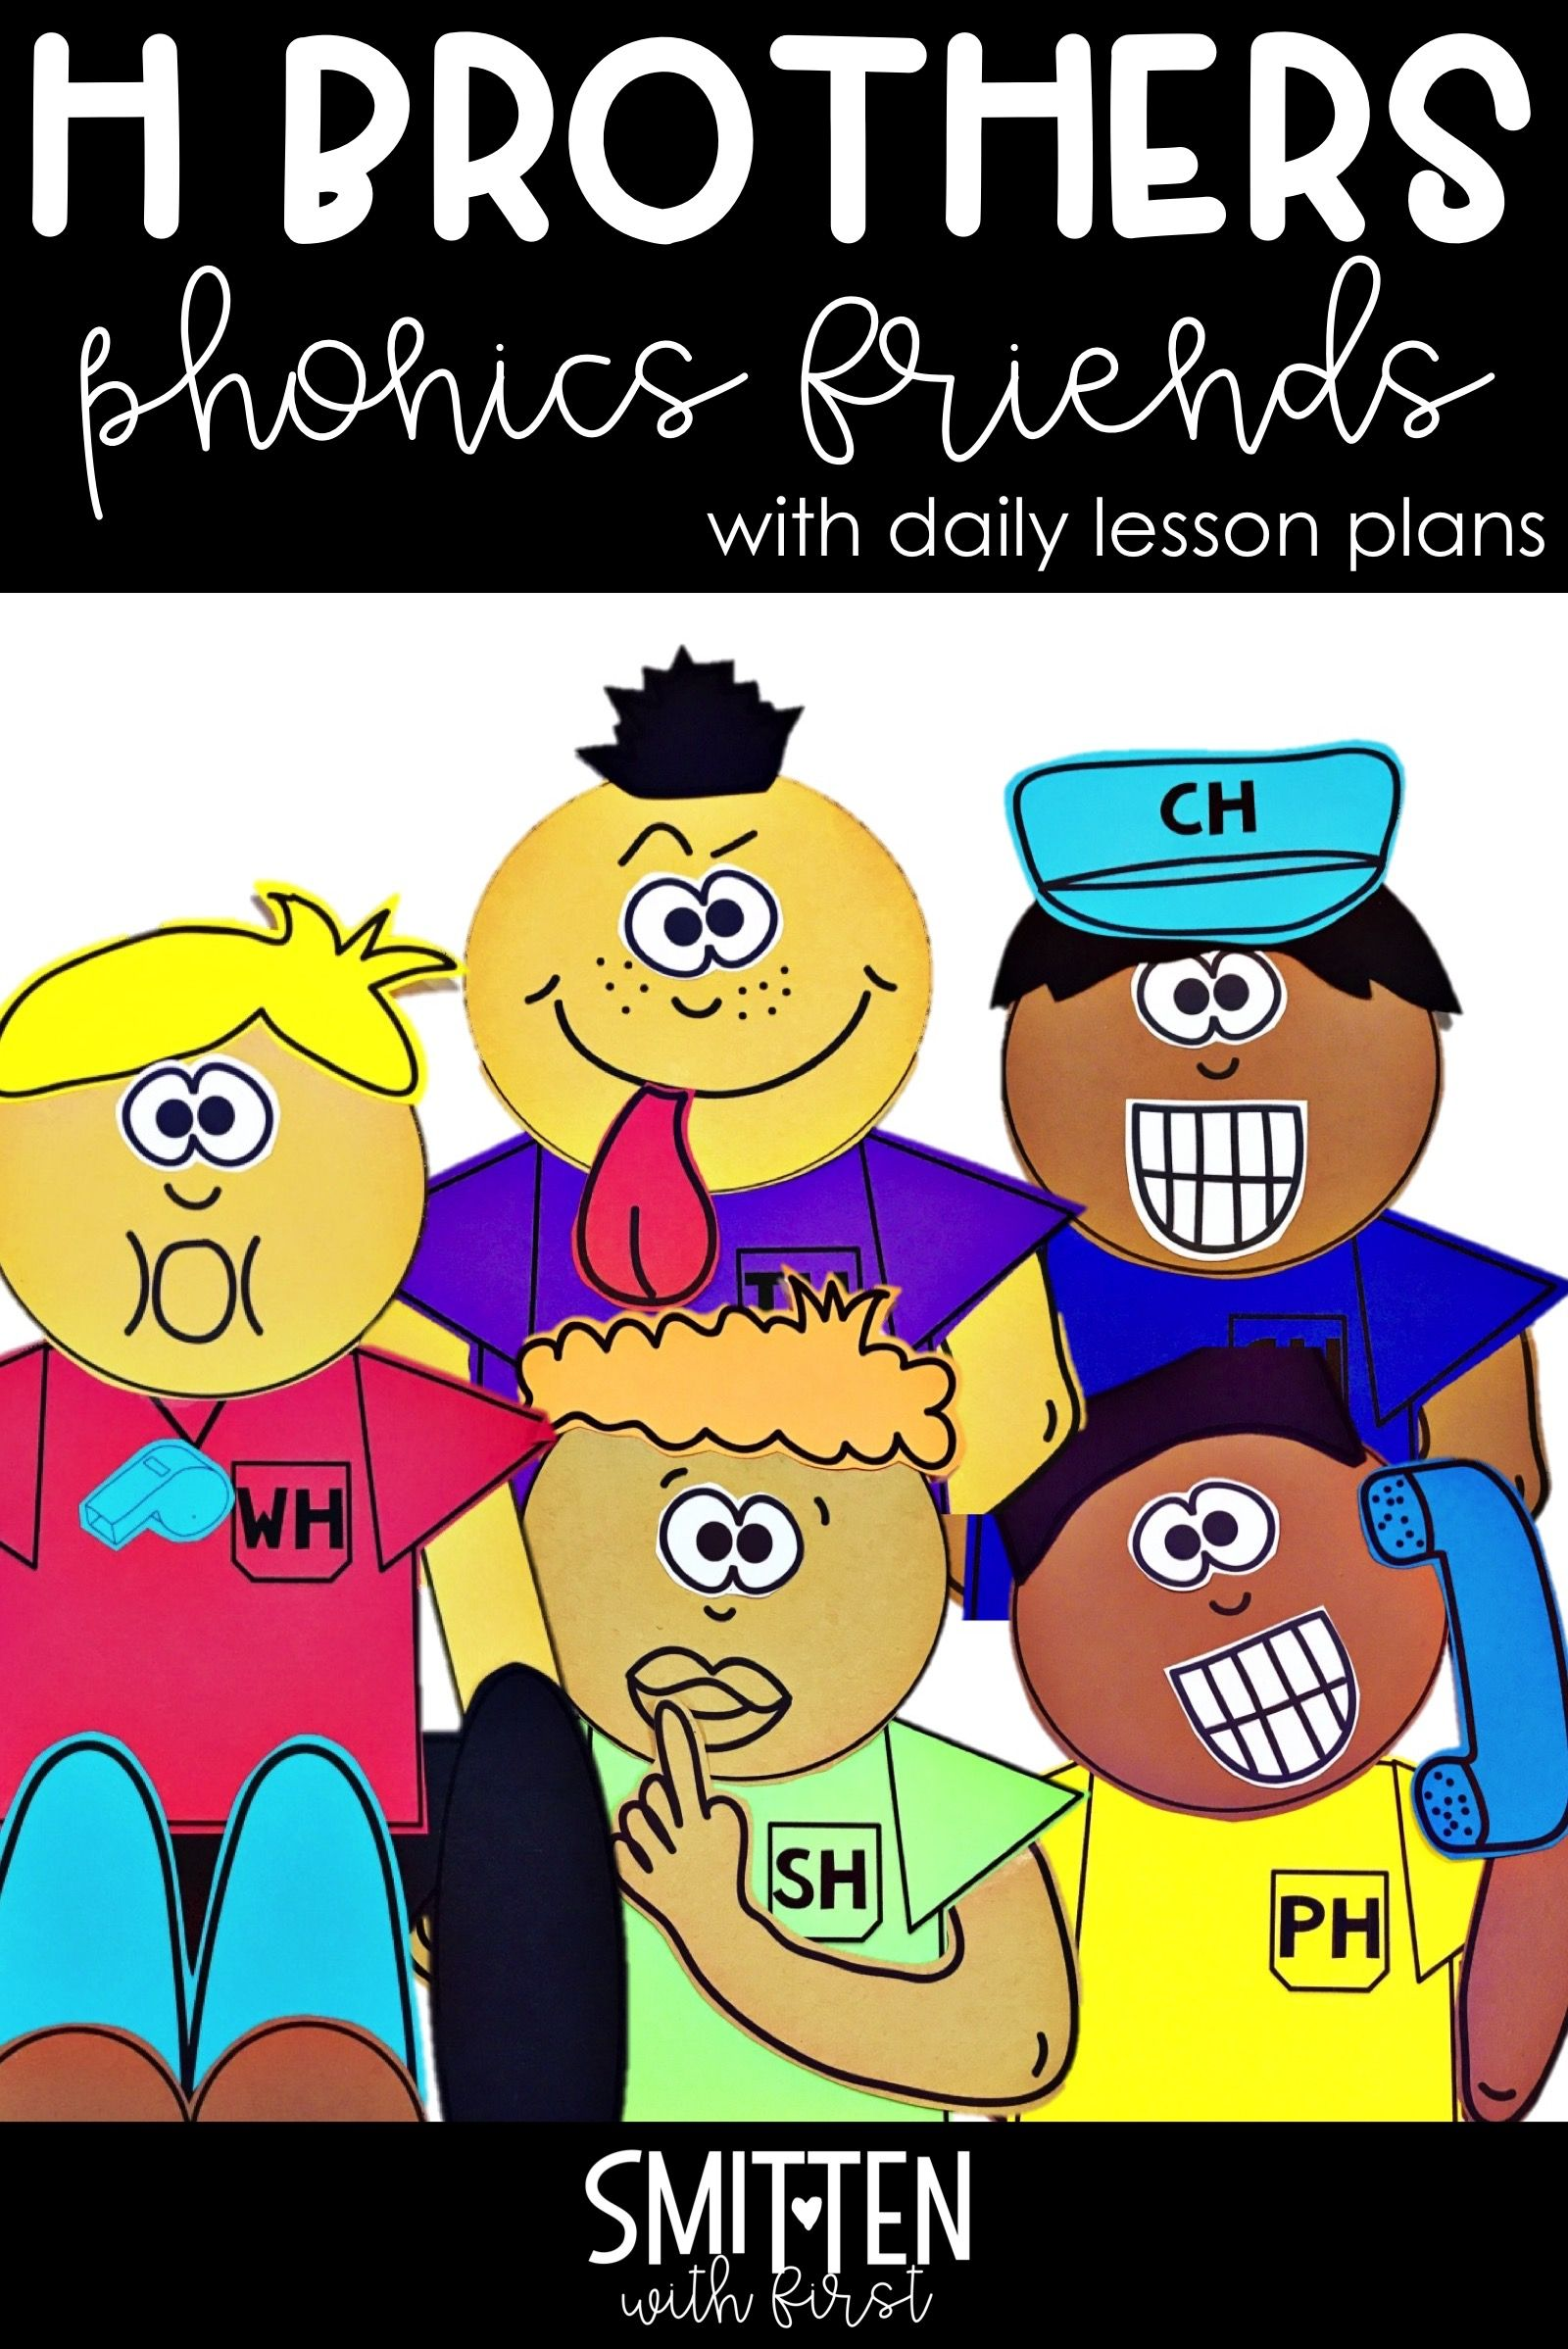 H Digraphs Wh Sh Ch Th Ph H Digraph Brothers Phonics